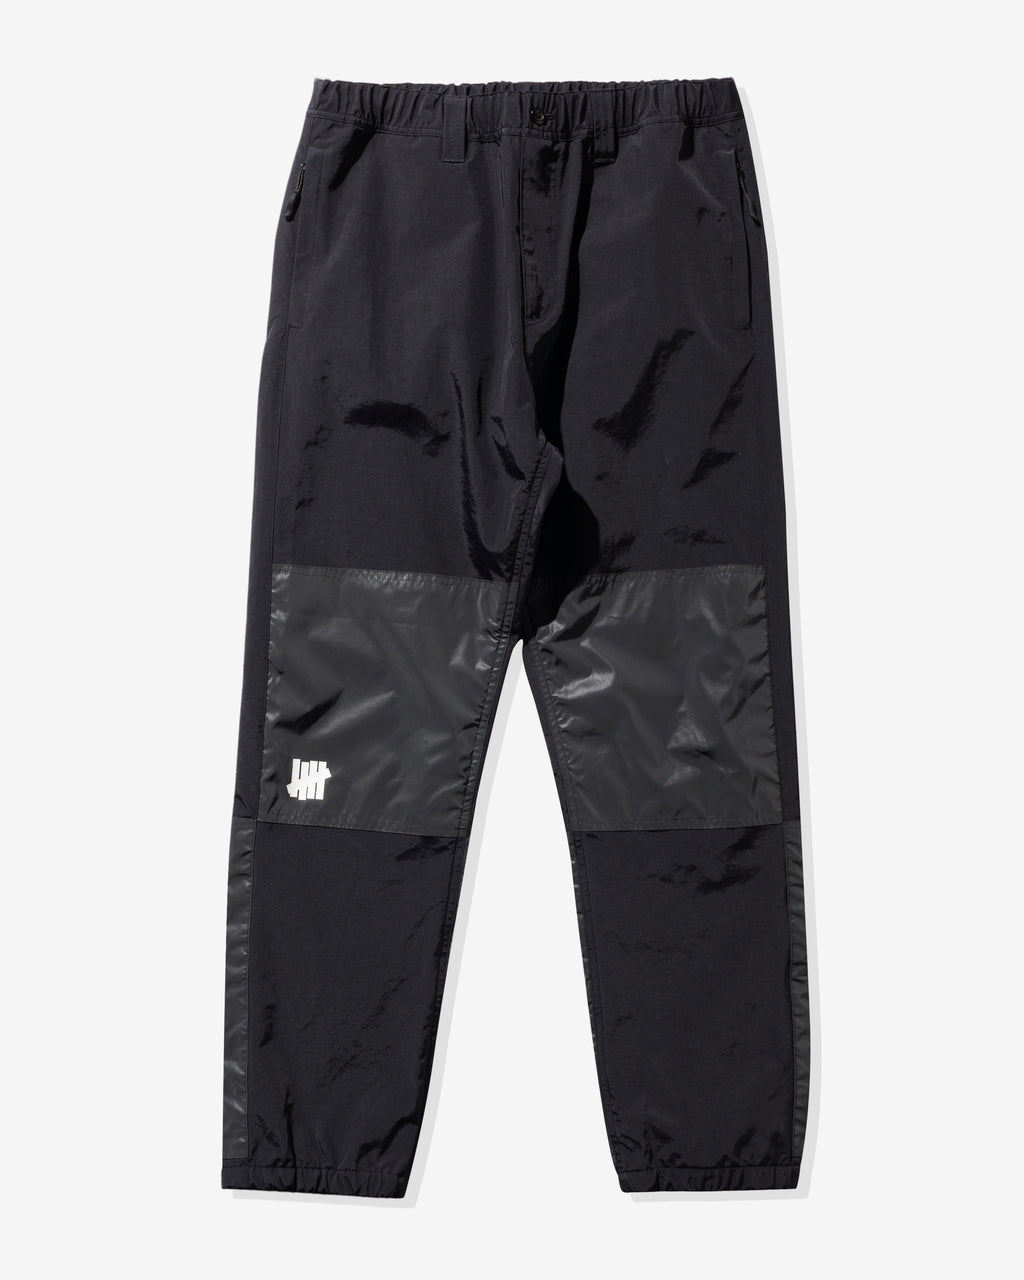 UNDEFEATED REFLECTIVE PANEL TRACK PANT - BLACK